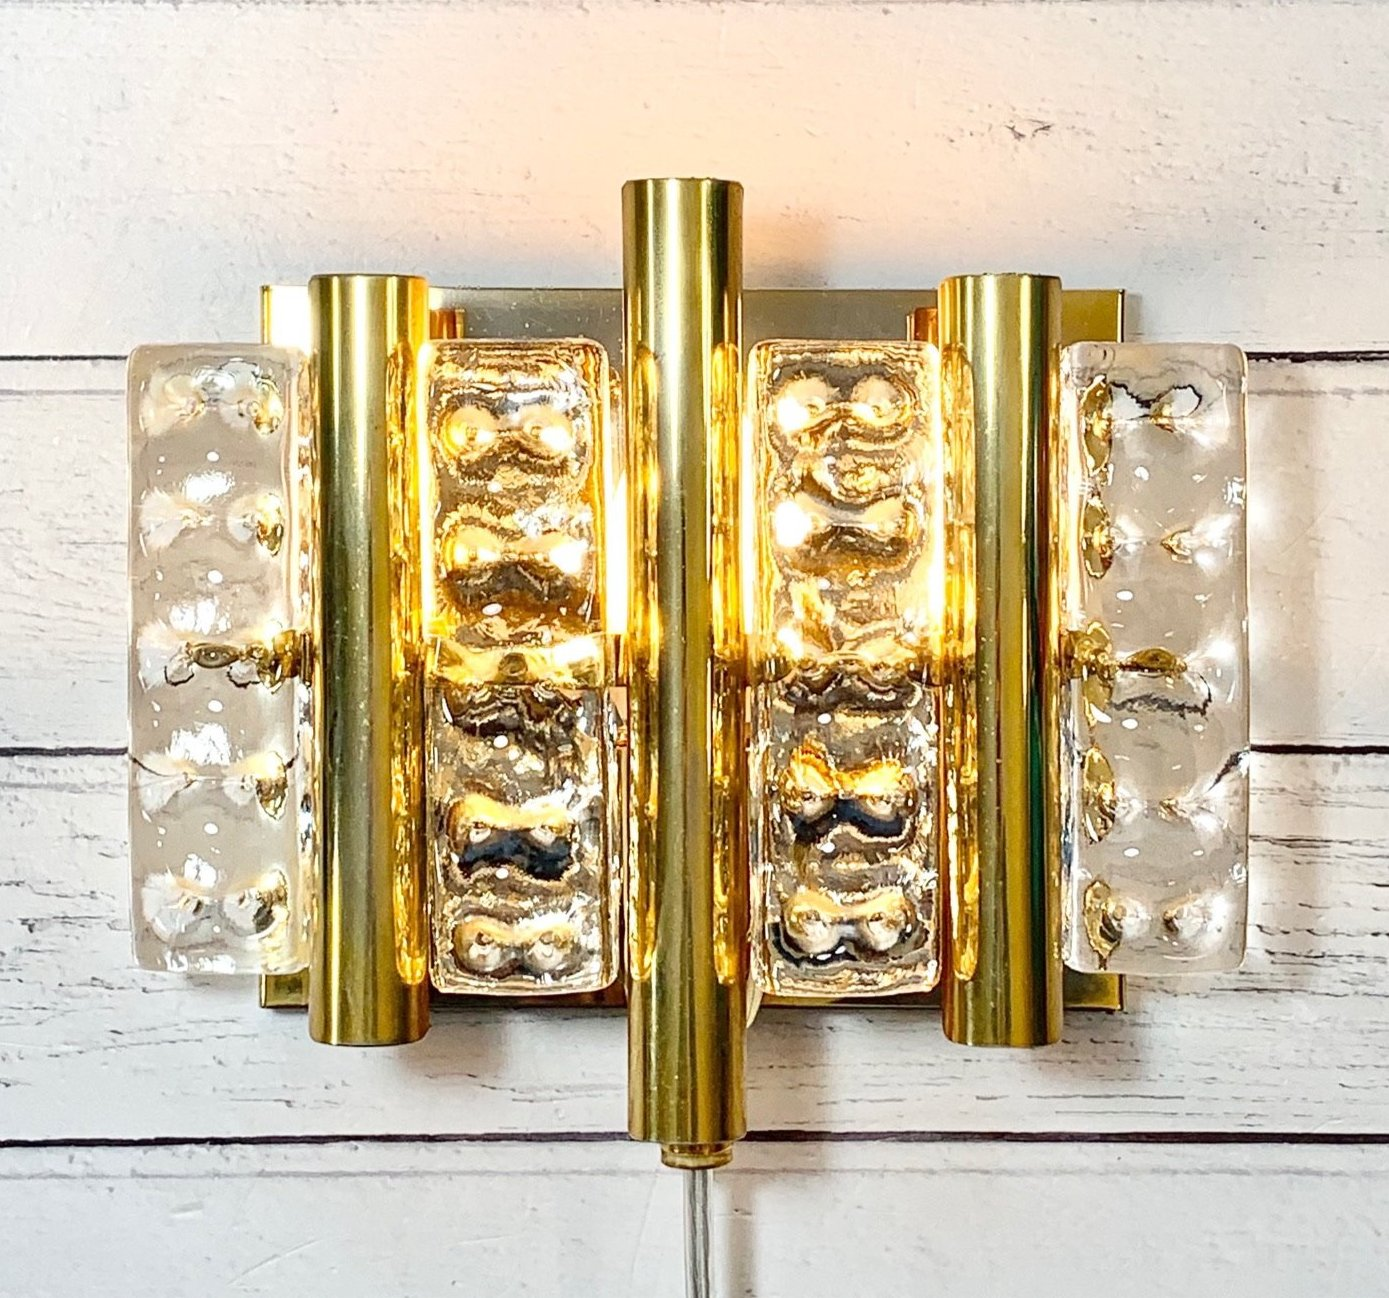 Danish Swedish Glass Sconce Wall Lamp Retro Vintage Art Deco Lighting Vitrika Lyfa Fagerlund Orrefors